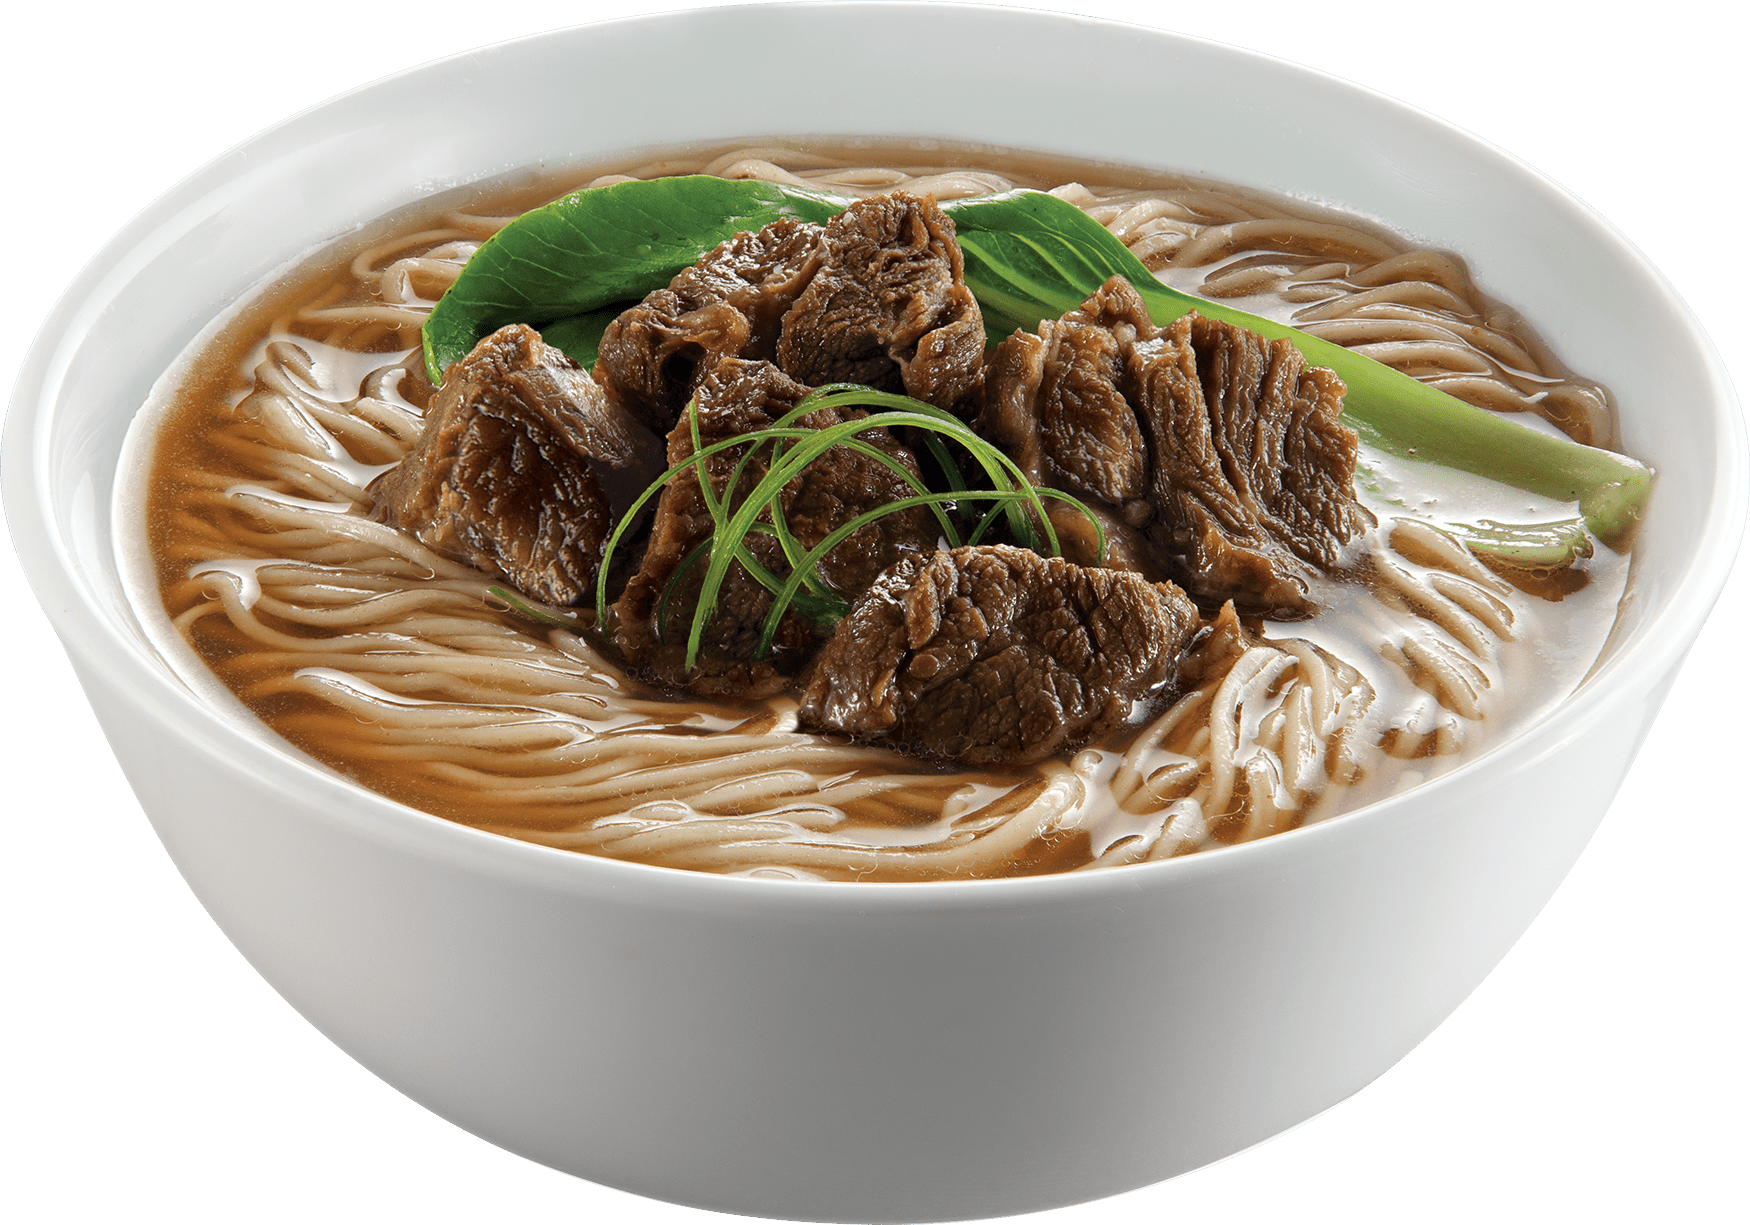 Noodle clipart beef noodle. Png images free download